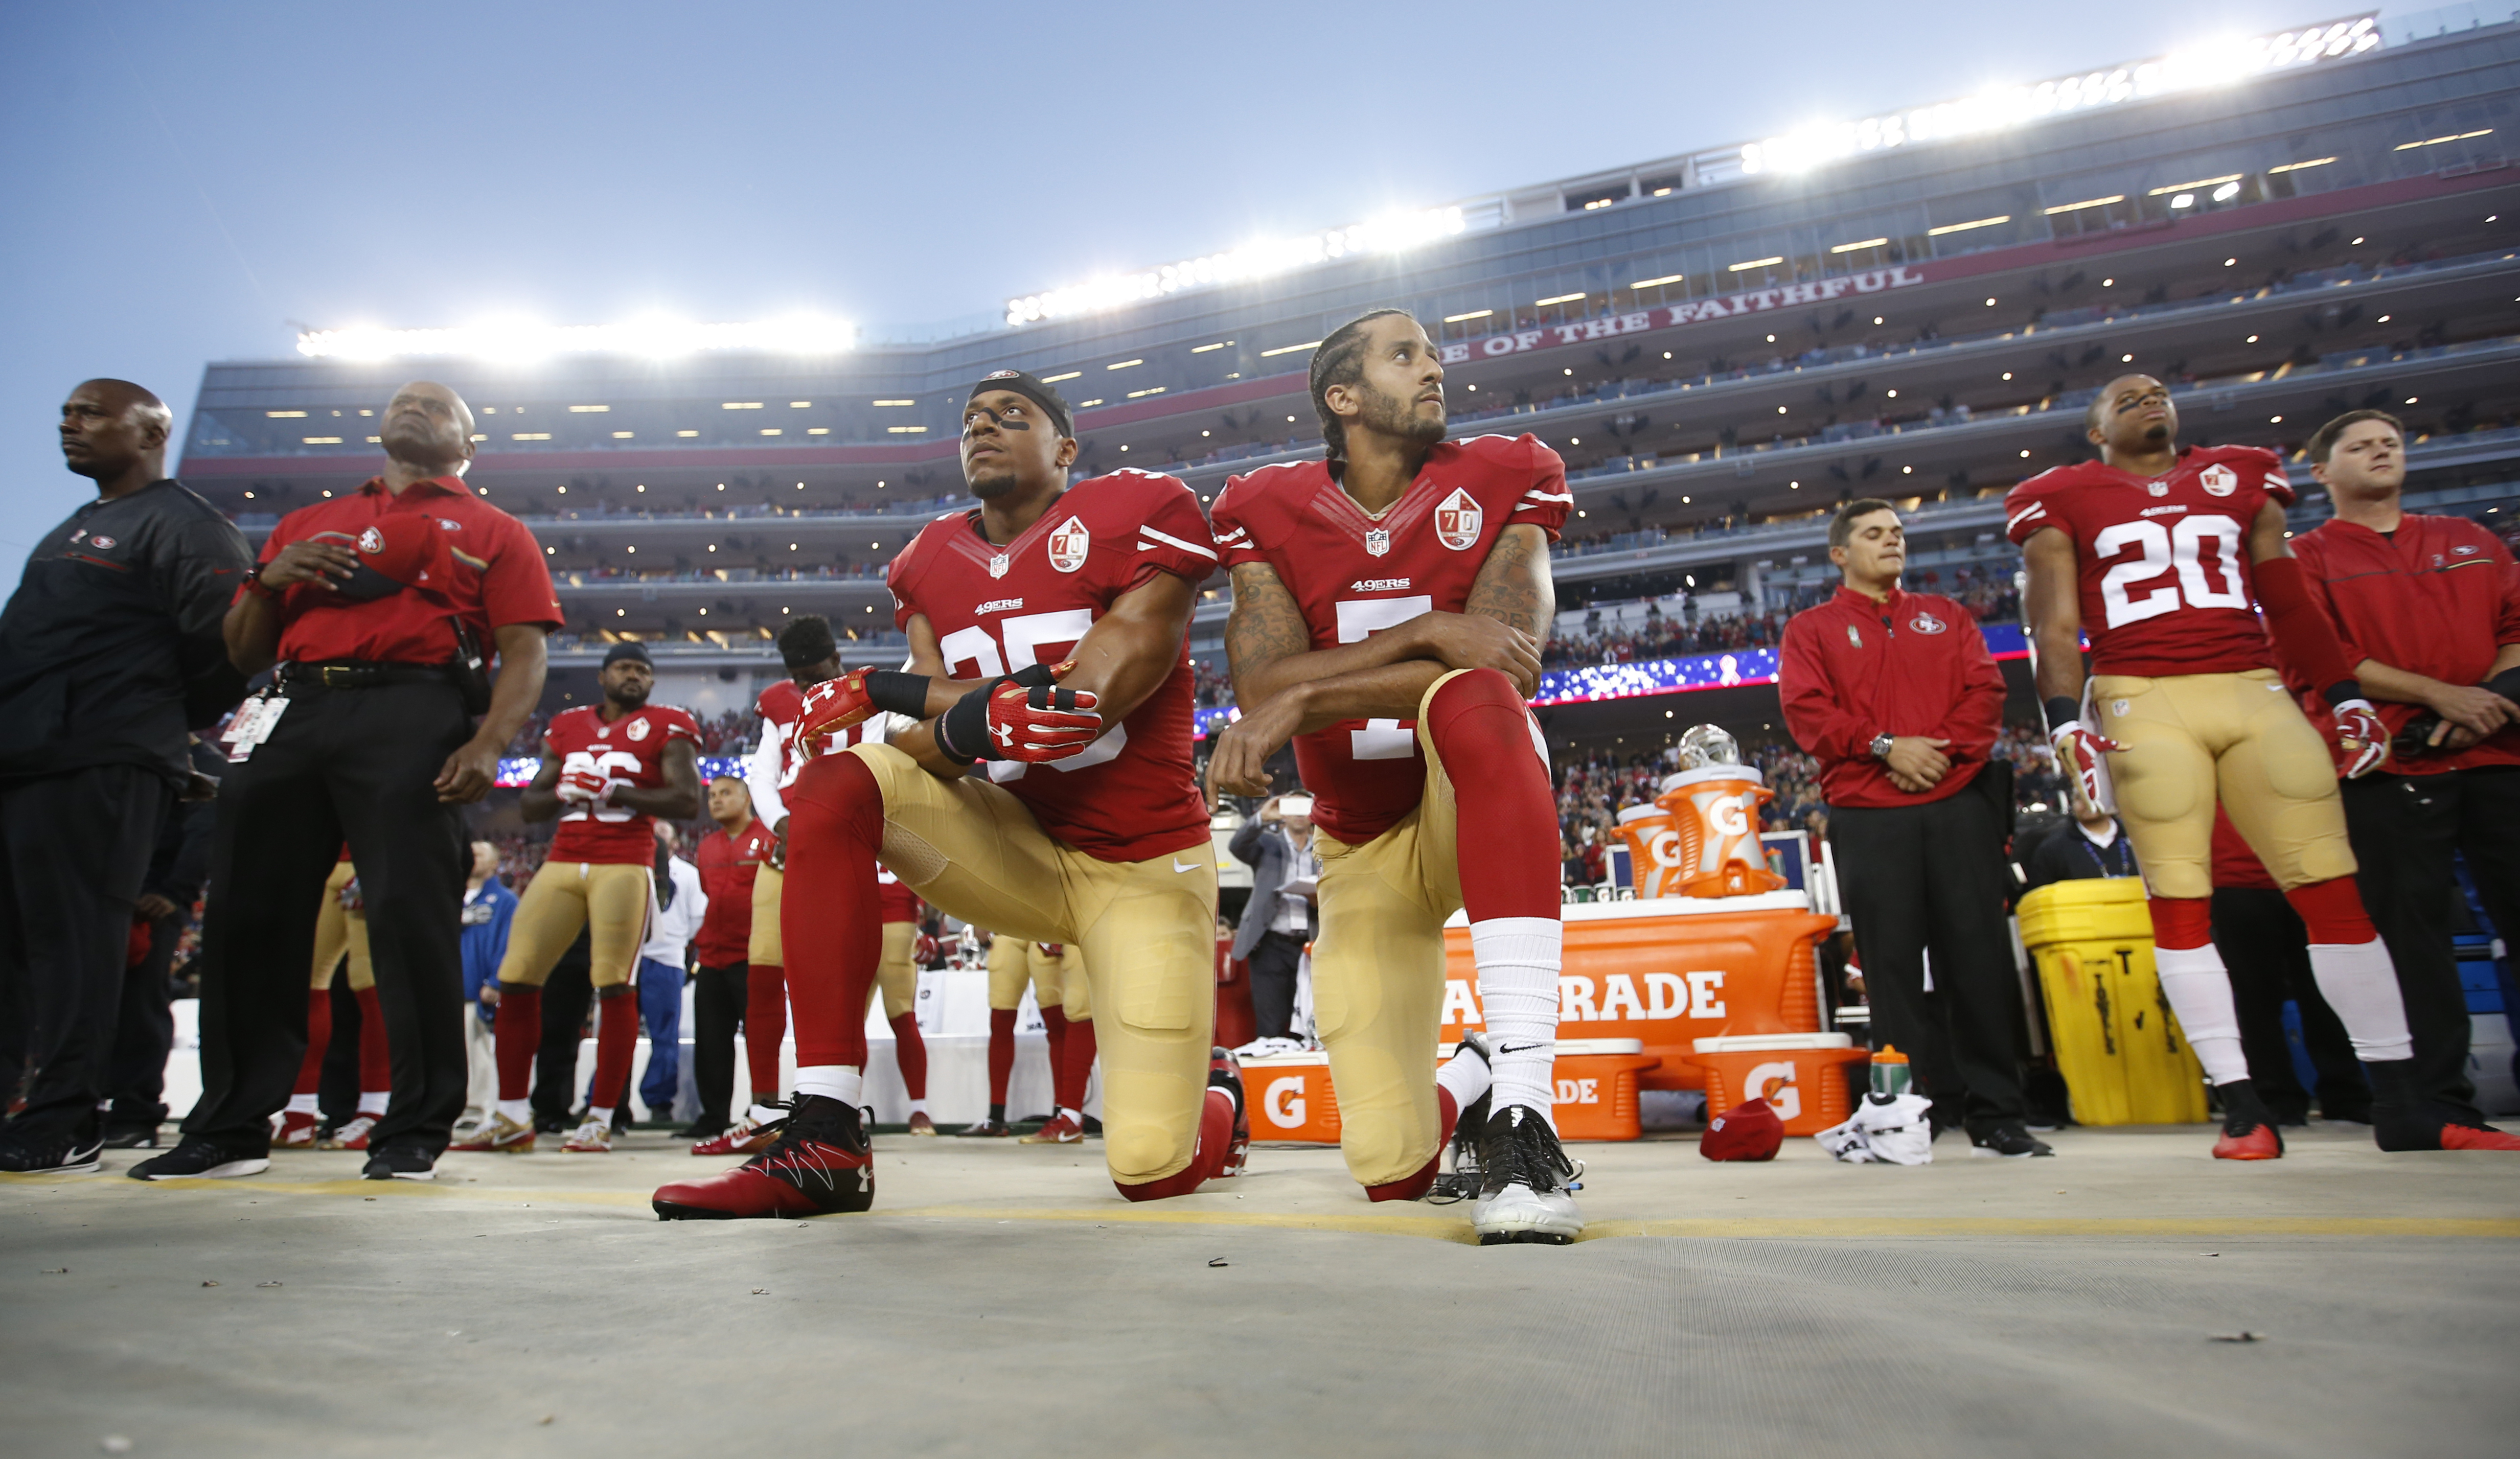 Eric Reid (35) and Colin Kaepernick (7) of the San Francisco 49ers kneel during the anthem, prior to the game against the Los Angeles Rams at Levi Stadium in Santa Clara, Calif., on Sept. 12, 2016.